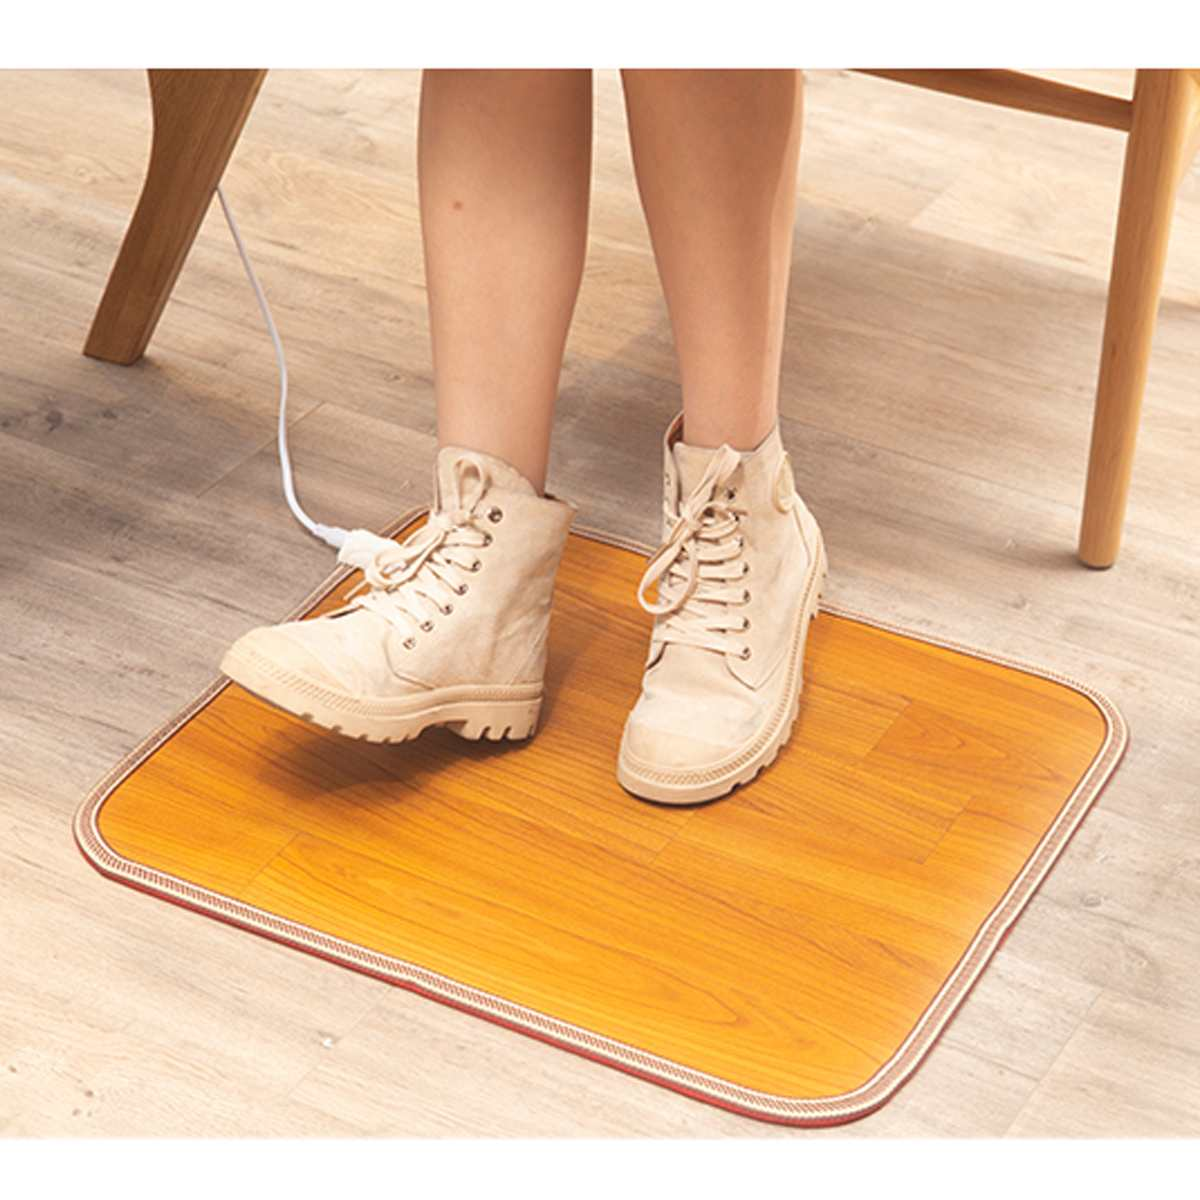 Heating Foot Mat Warmer Electric Heating Pads Feet Leg Warmer Carpet Thermostat Warming Tools Home Office